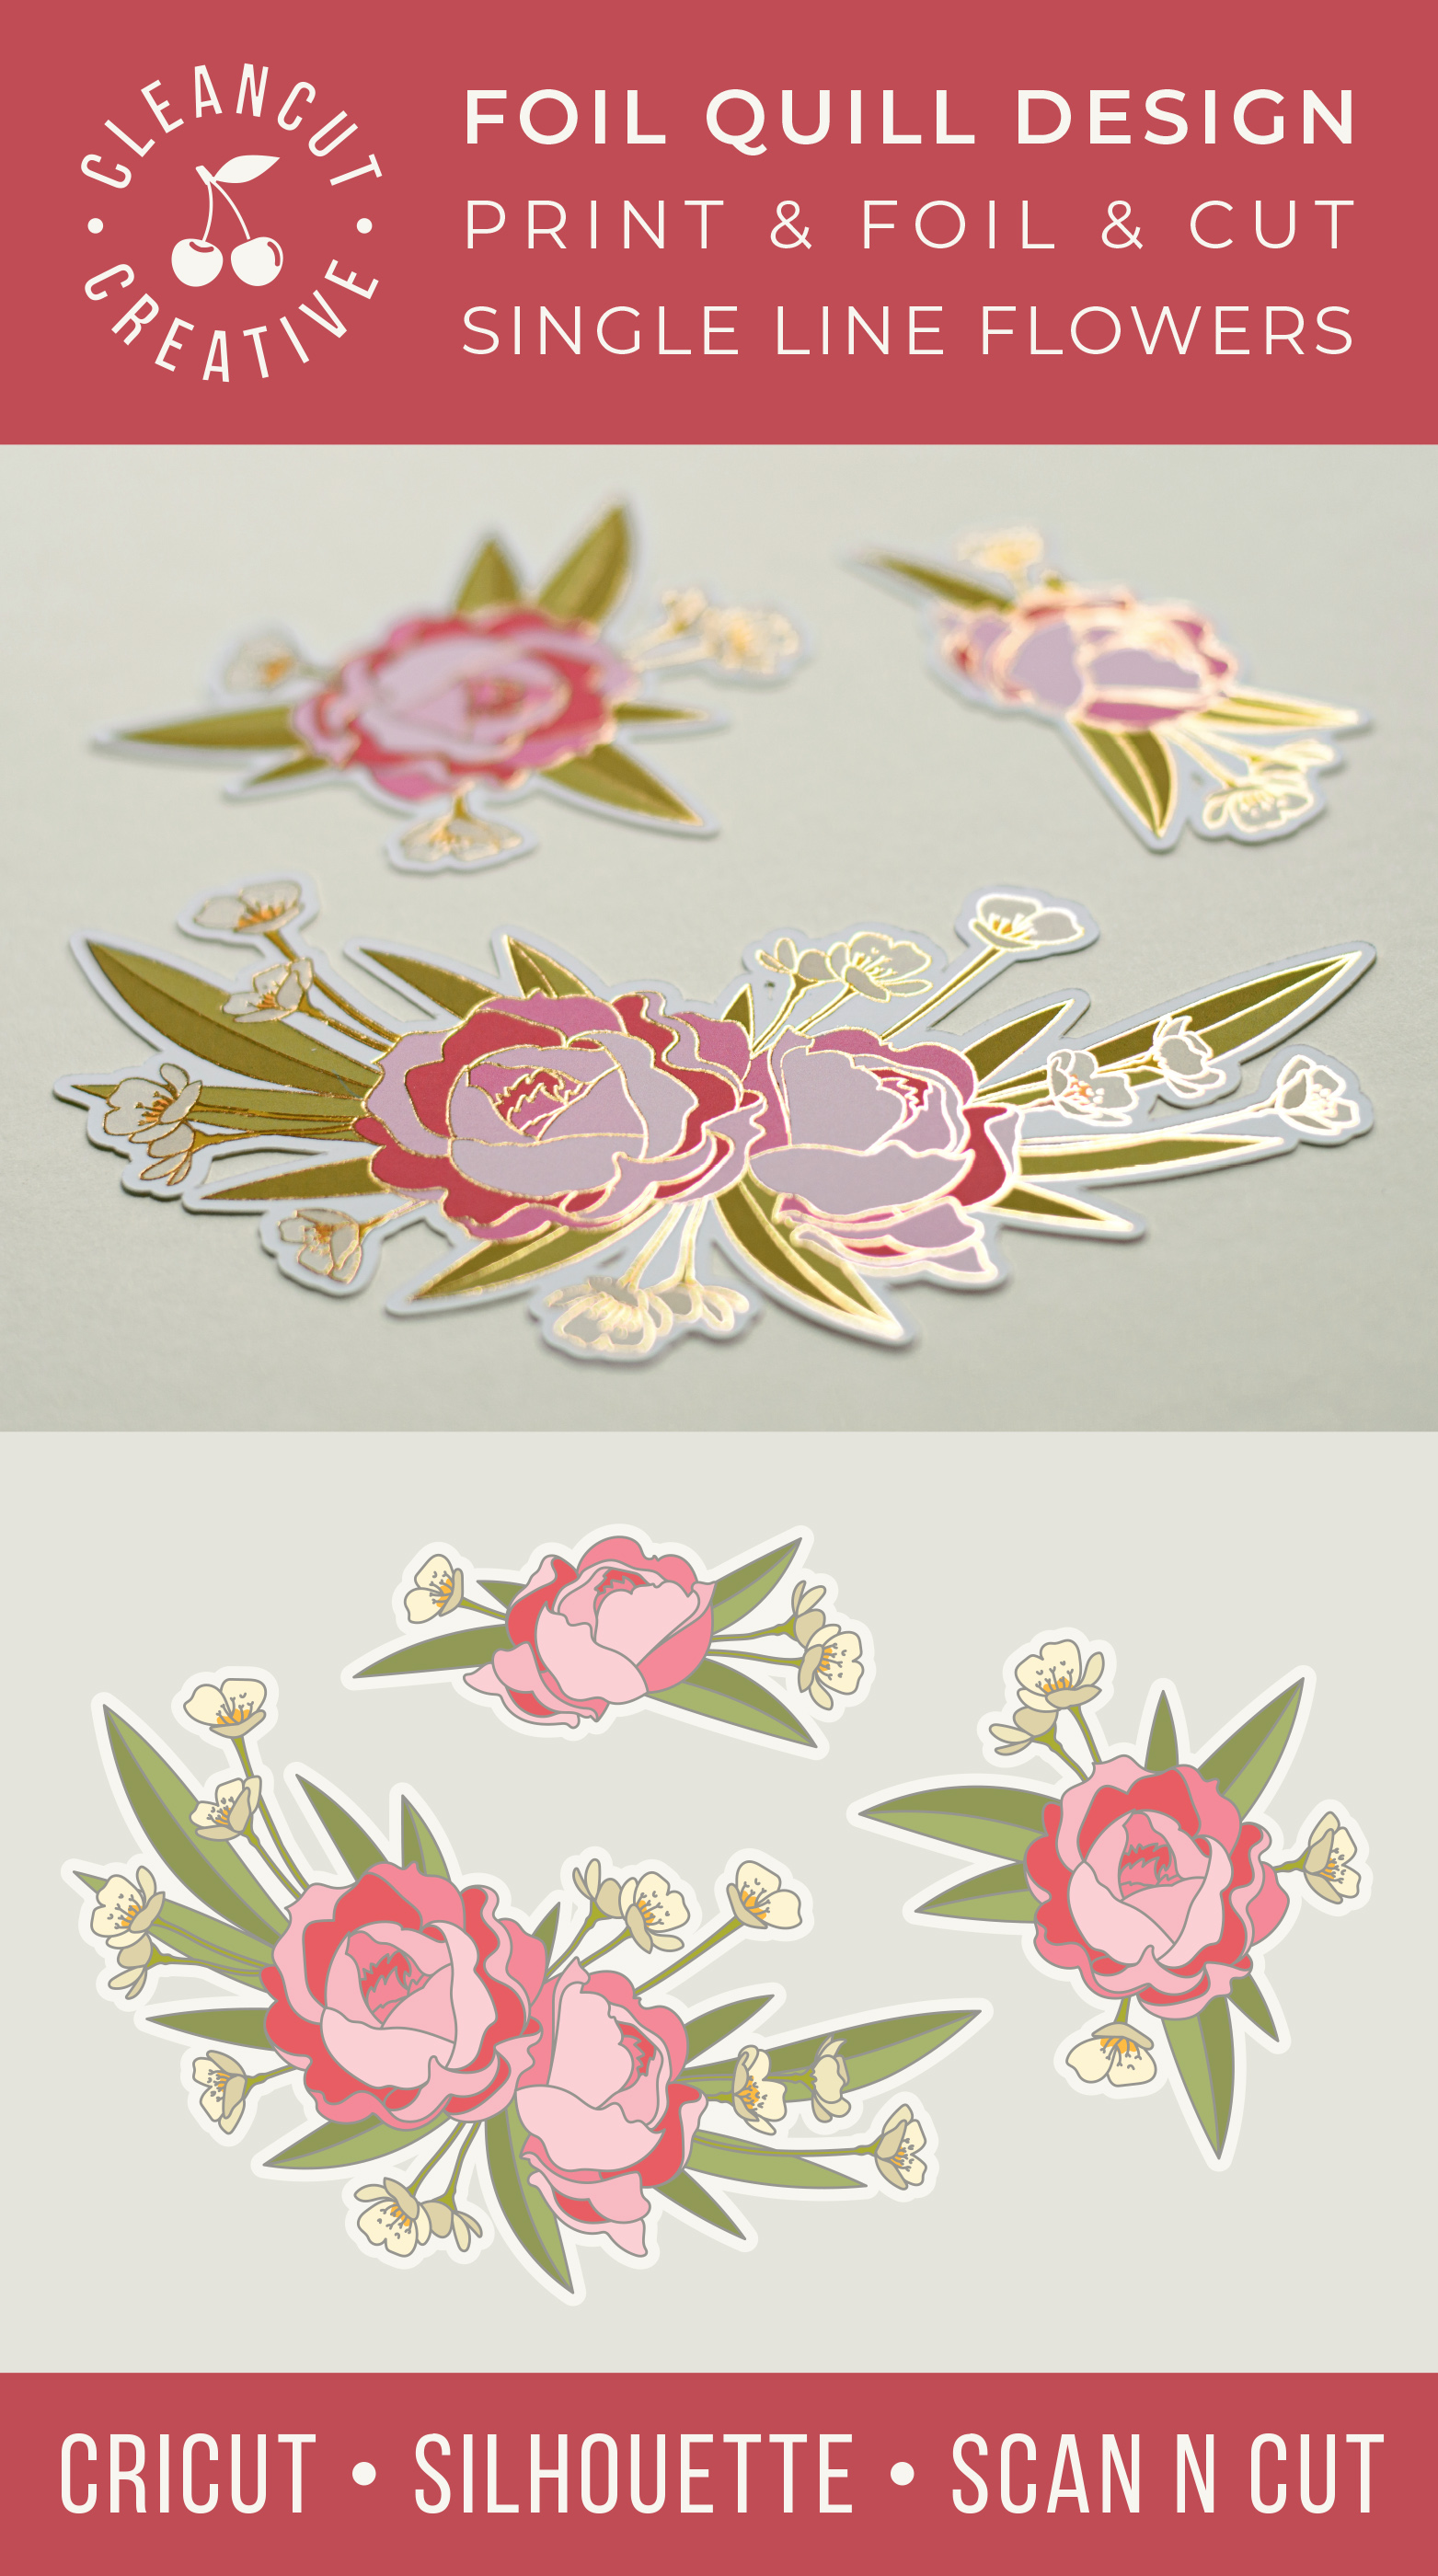 Foil Quill Flowers | Print & Foil single line sketch design example image 5